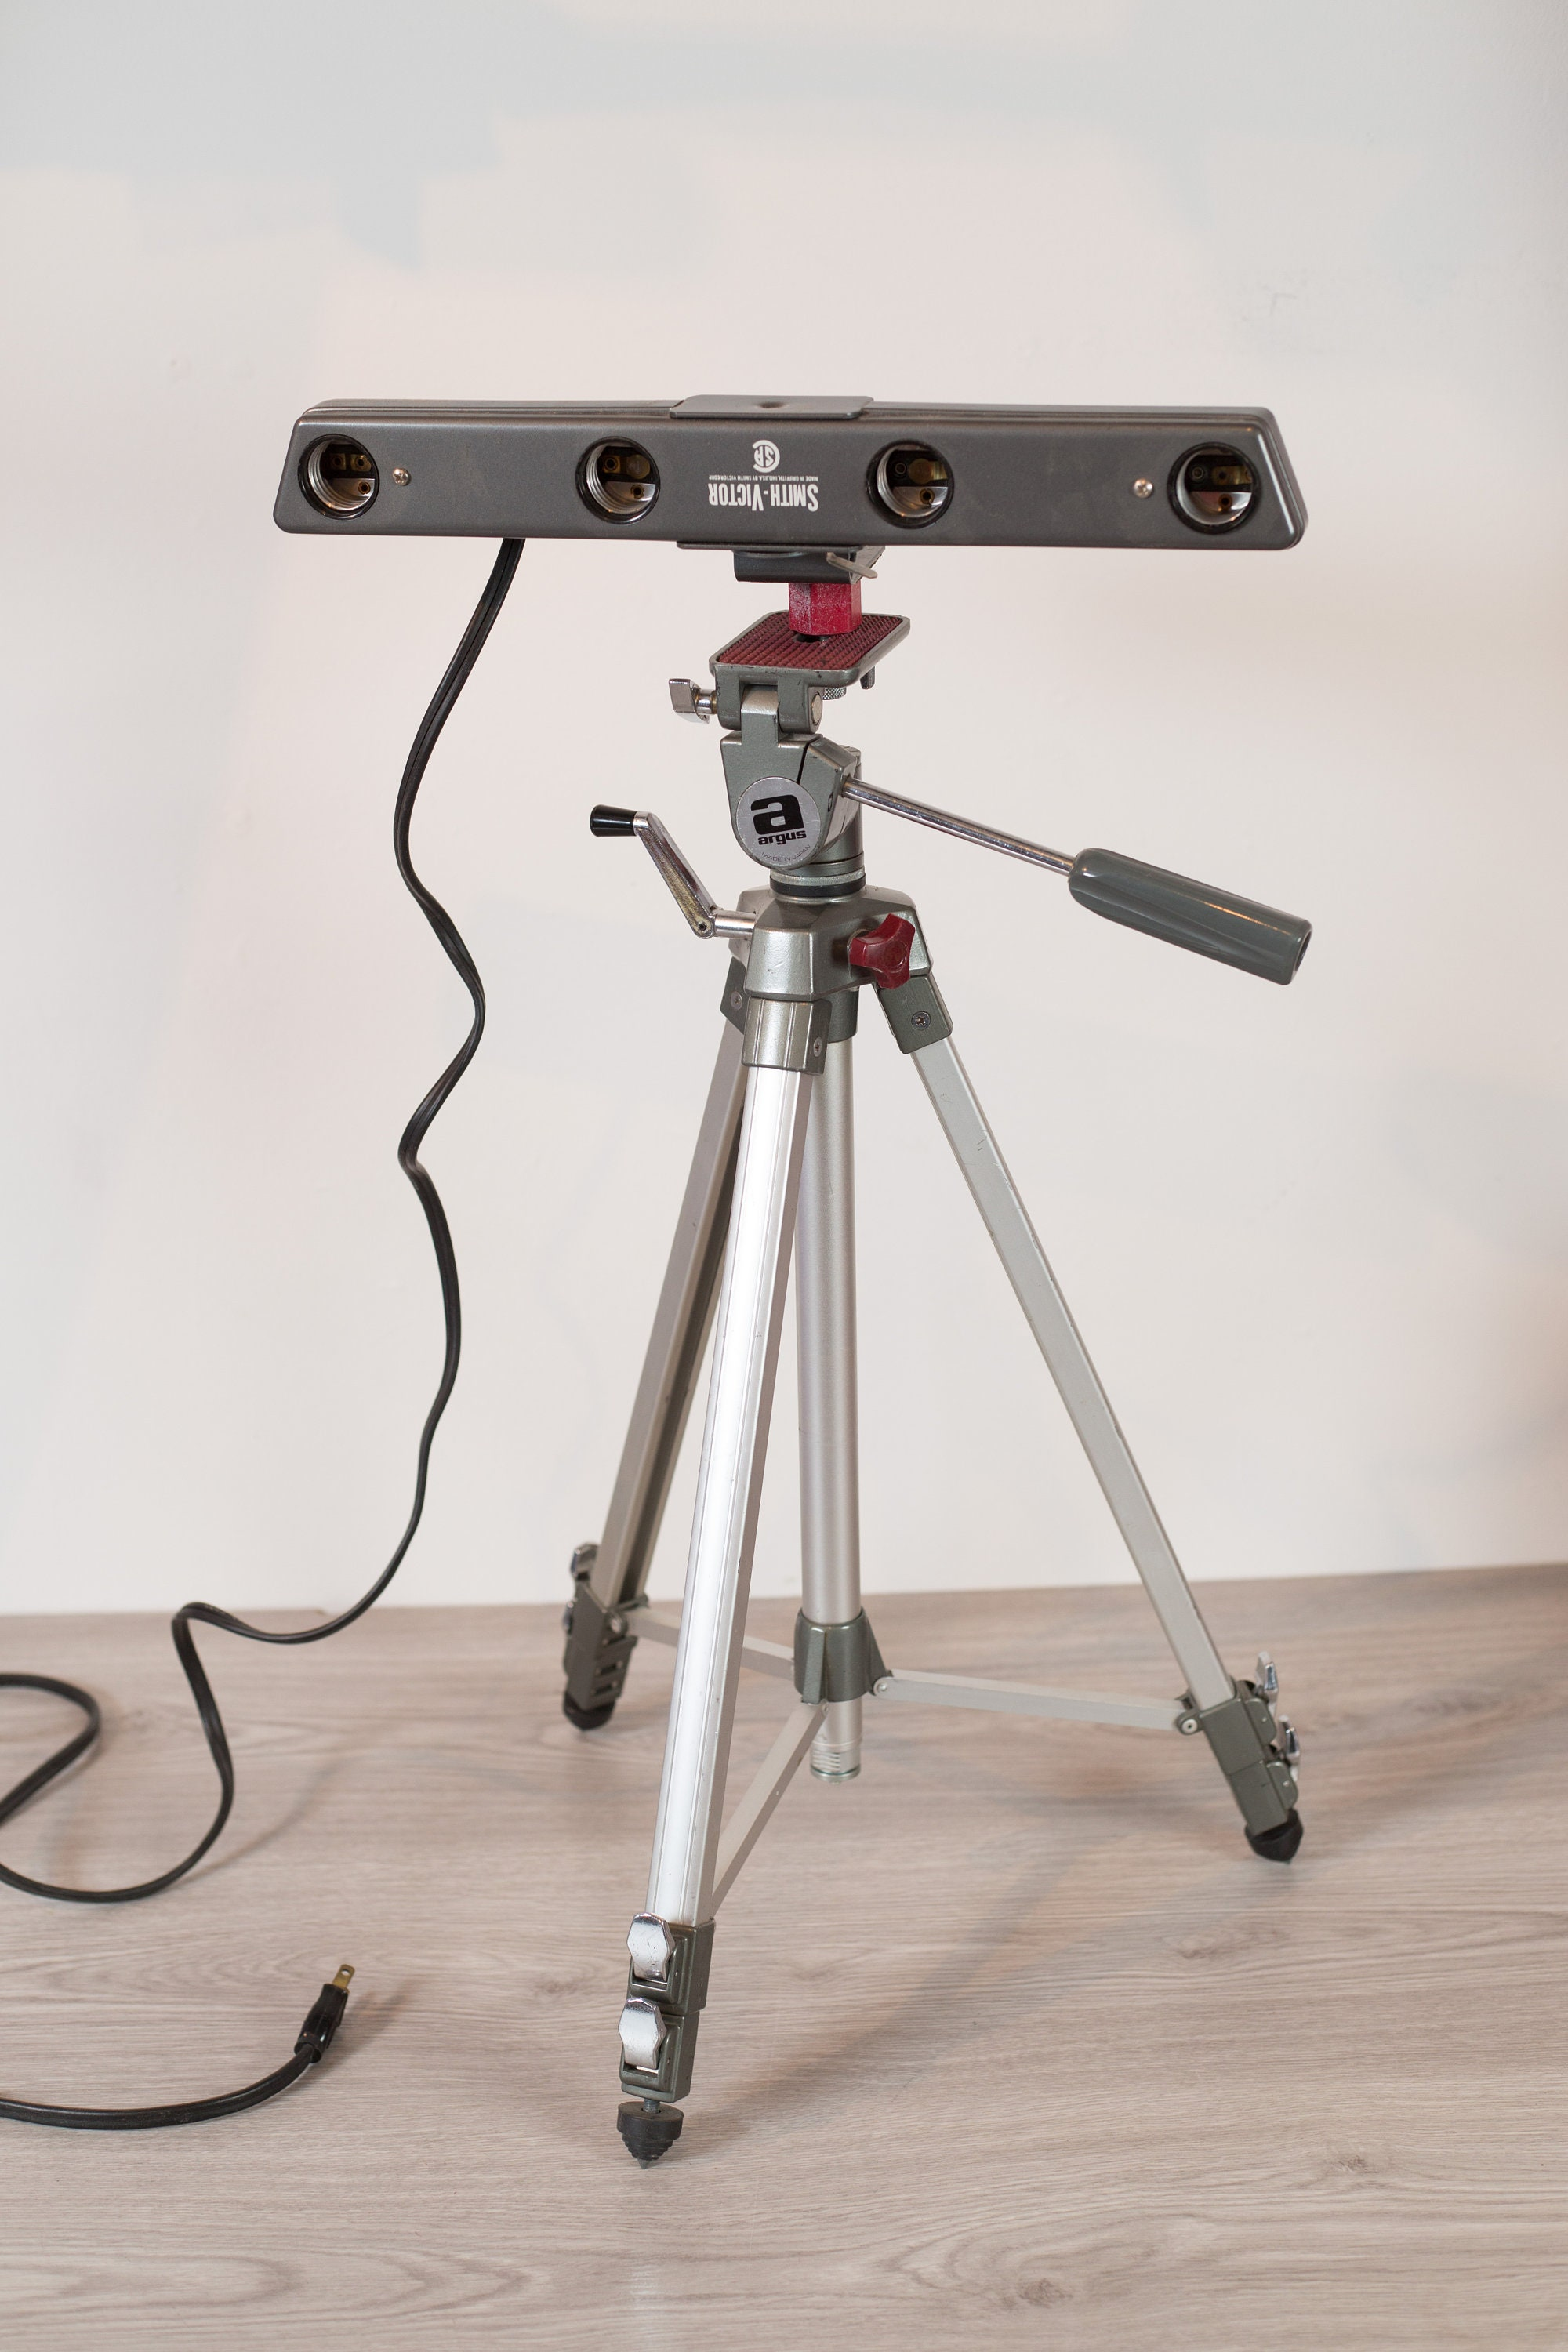 for stand mini studs product portrait light collapsible photo photography and video lighting studio studsminilightstandaluminiumalloyphotographyphotostudiolightstandsforvideoportraitandphotographylighting stands alloy neewer aluminium